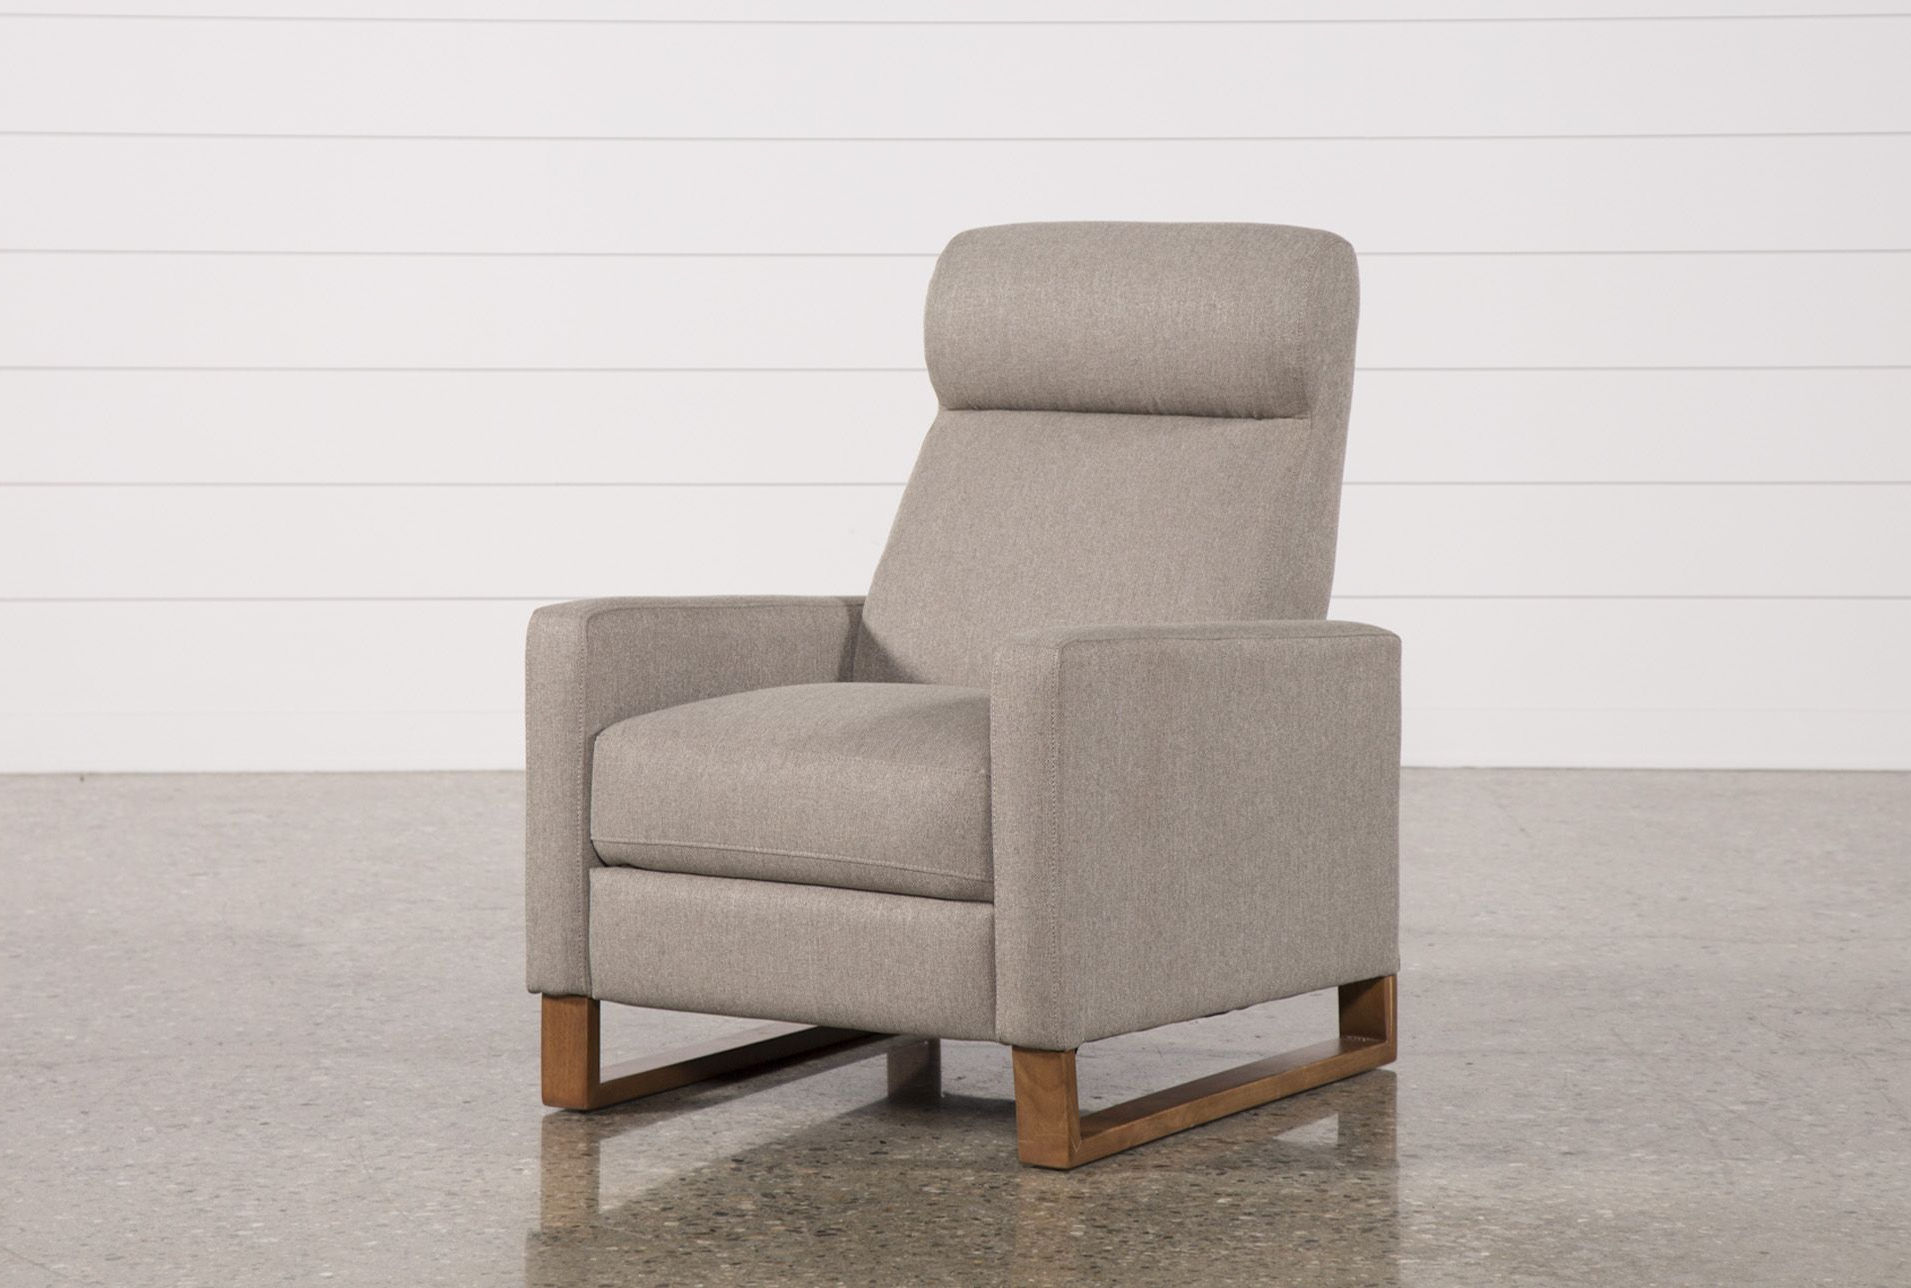 Recliner, Storms And Products Inside Newest Franco Iii Fabric Swivel Rocker Recliners (Gallery 3 of 20)